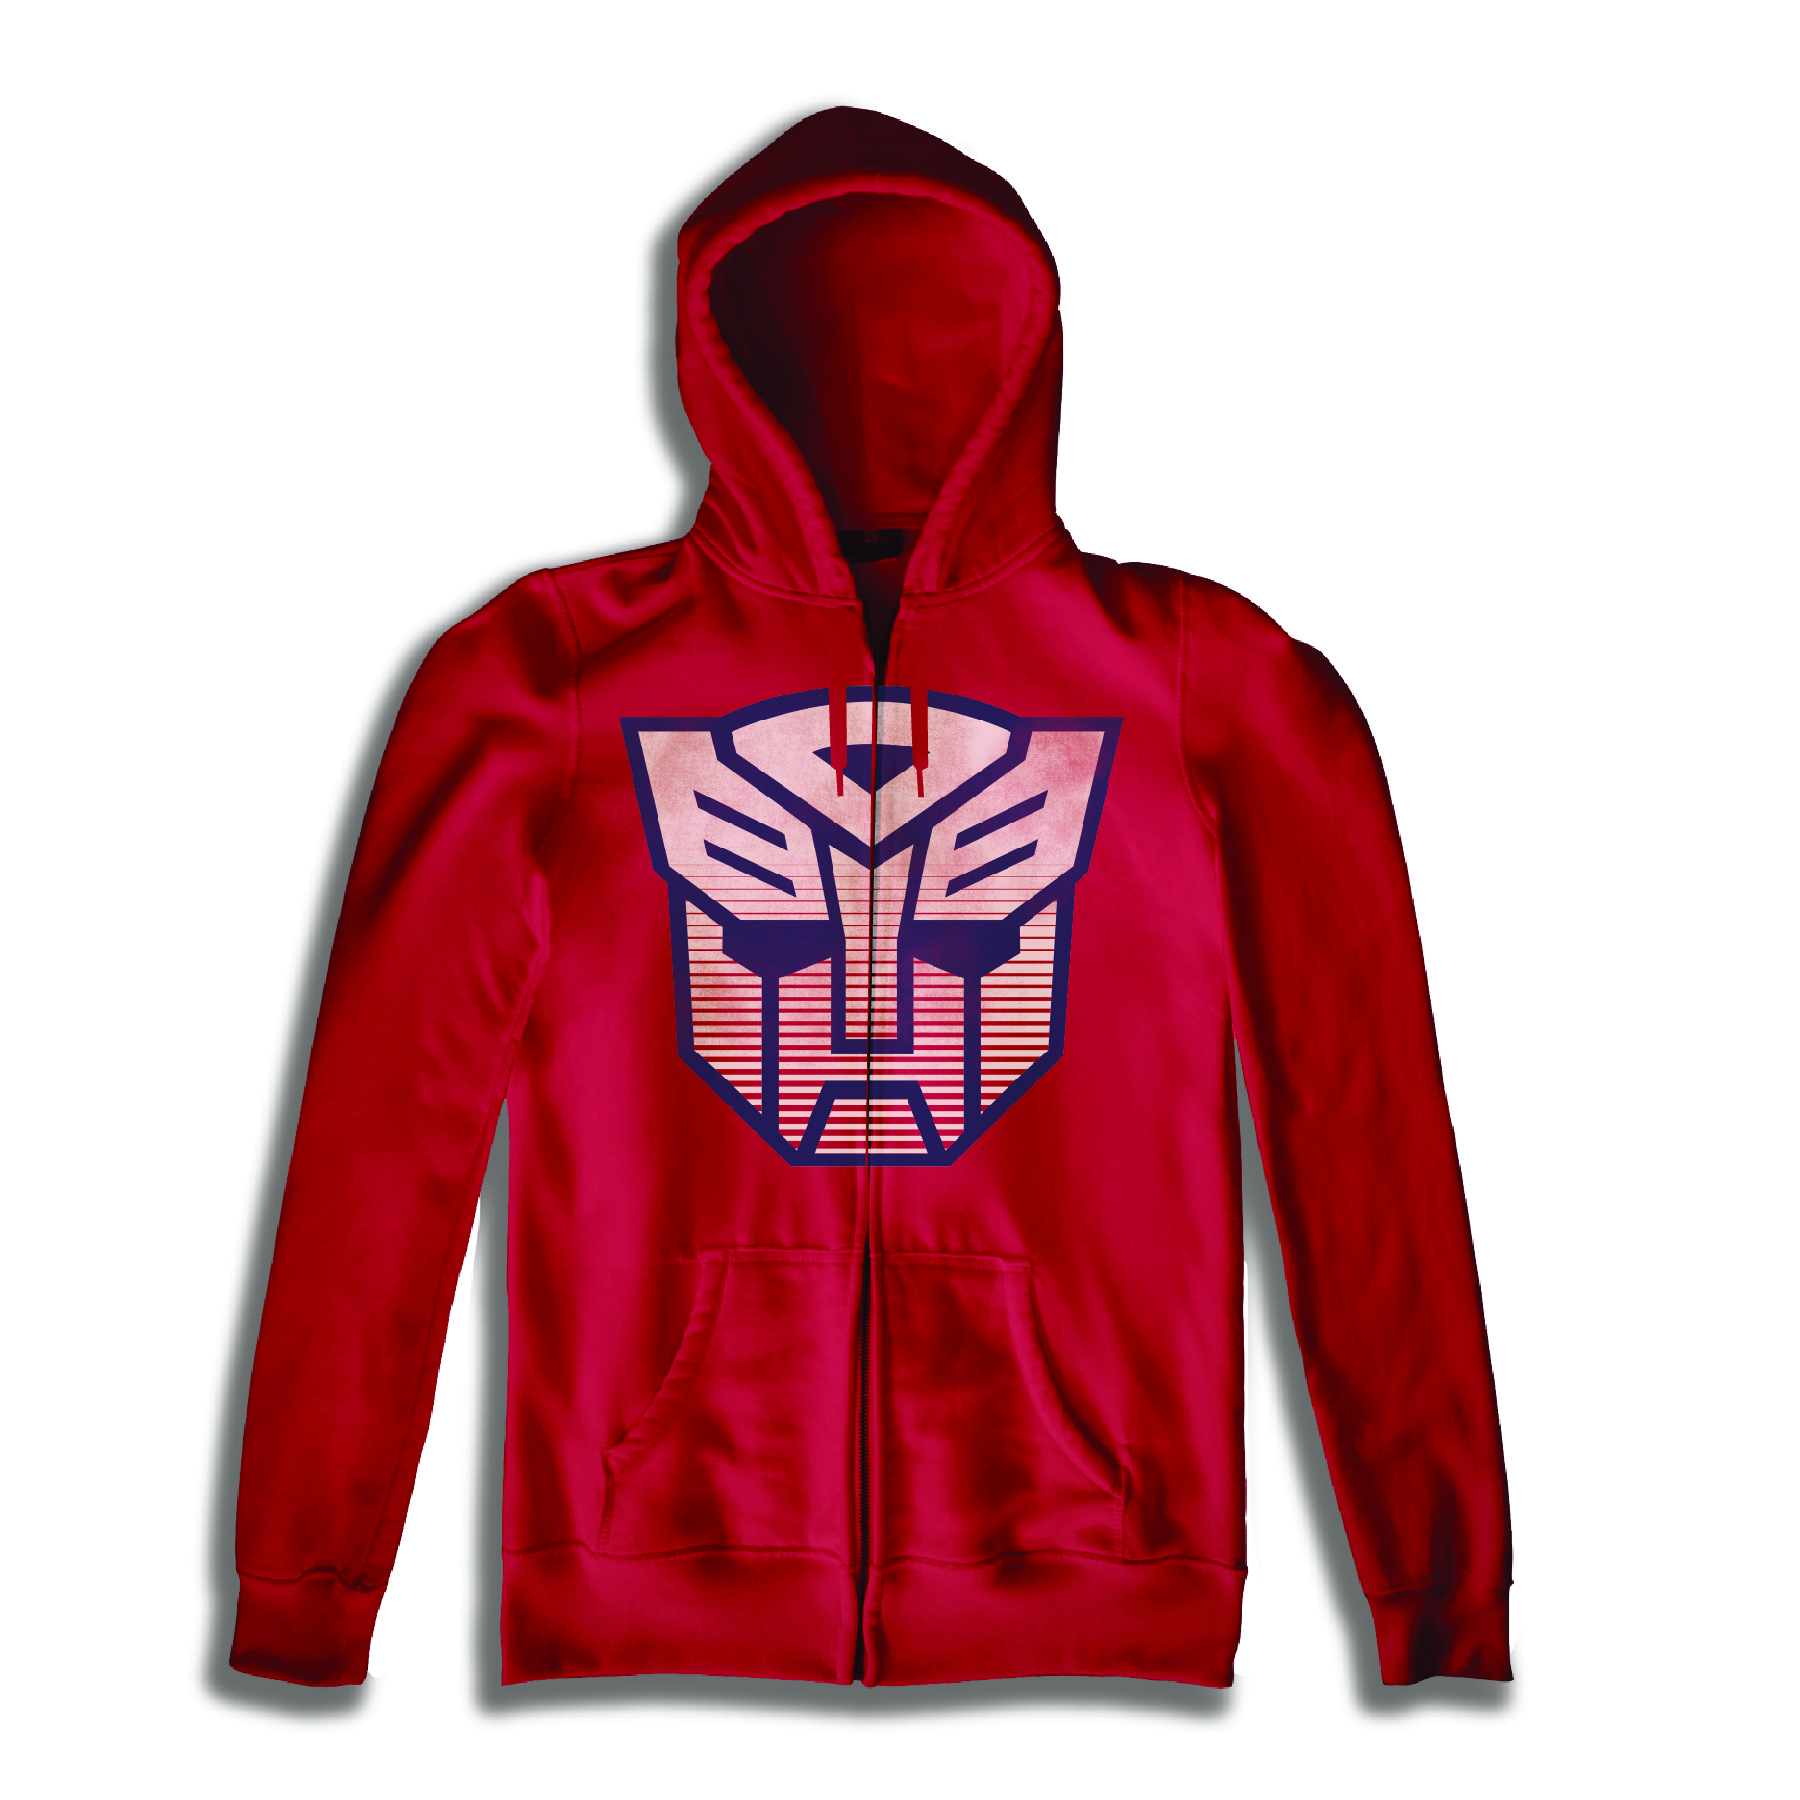 TRANSFORMERS AUTOBOT SYMBOL RED HOODIE SM